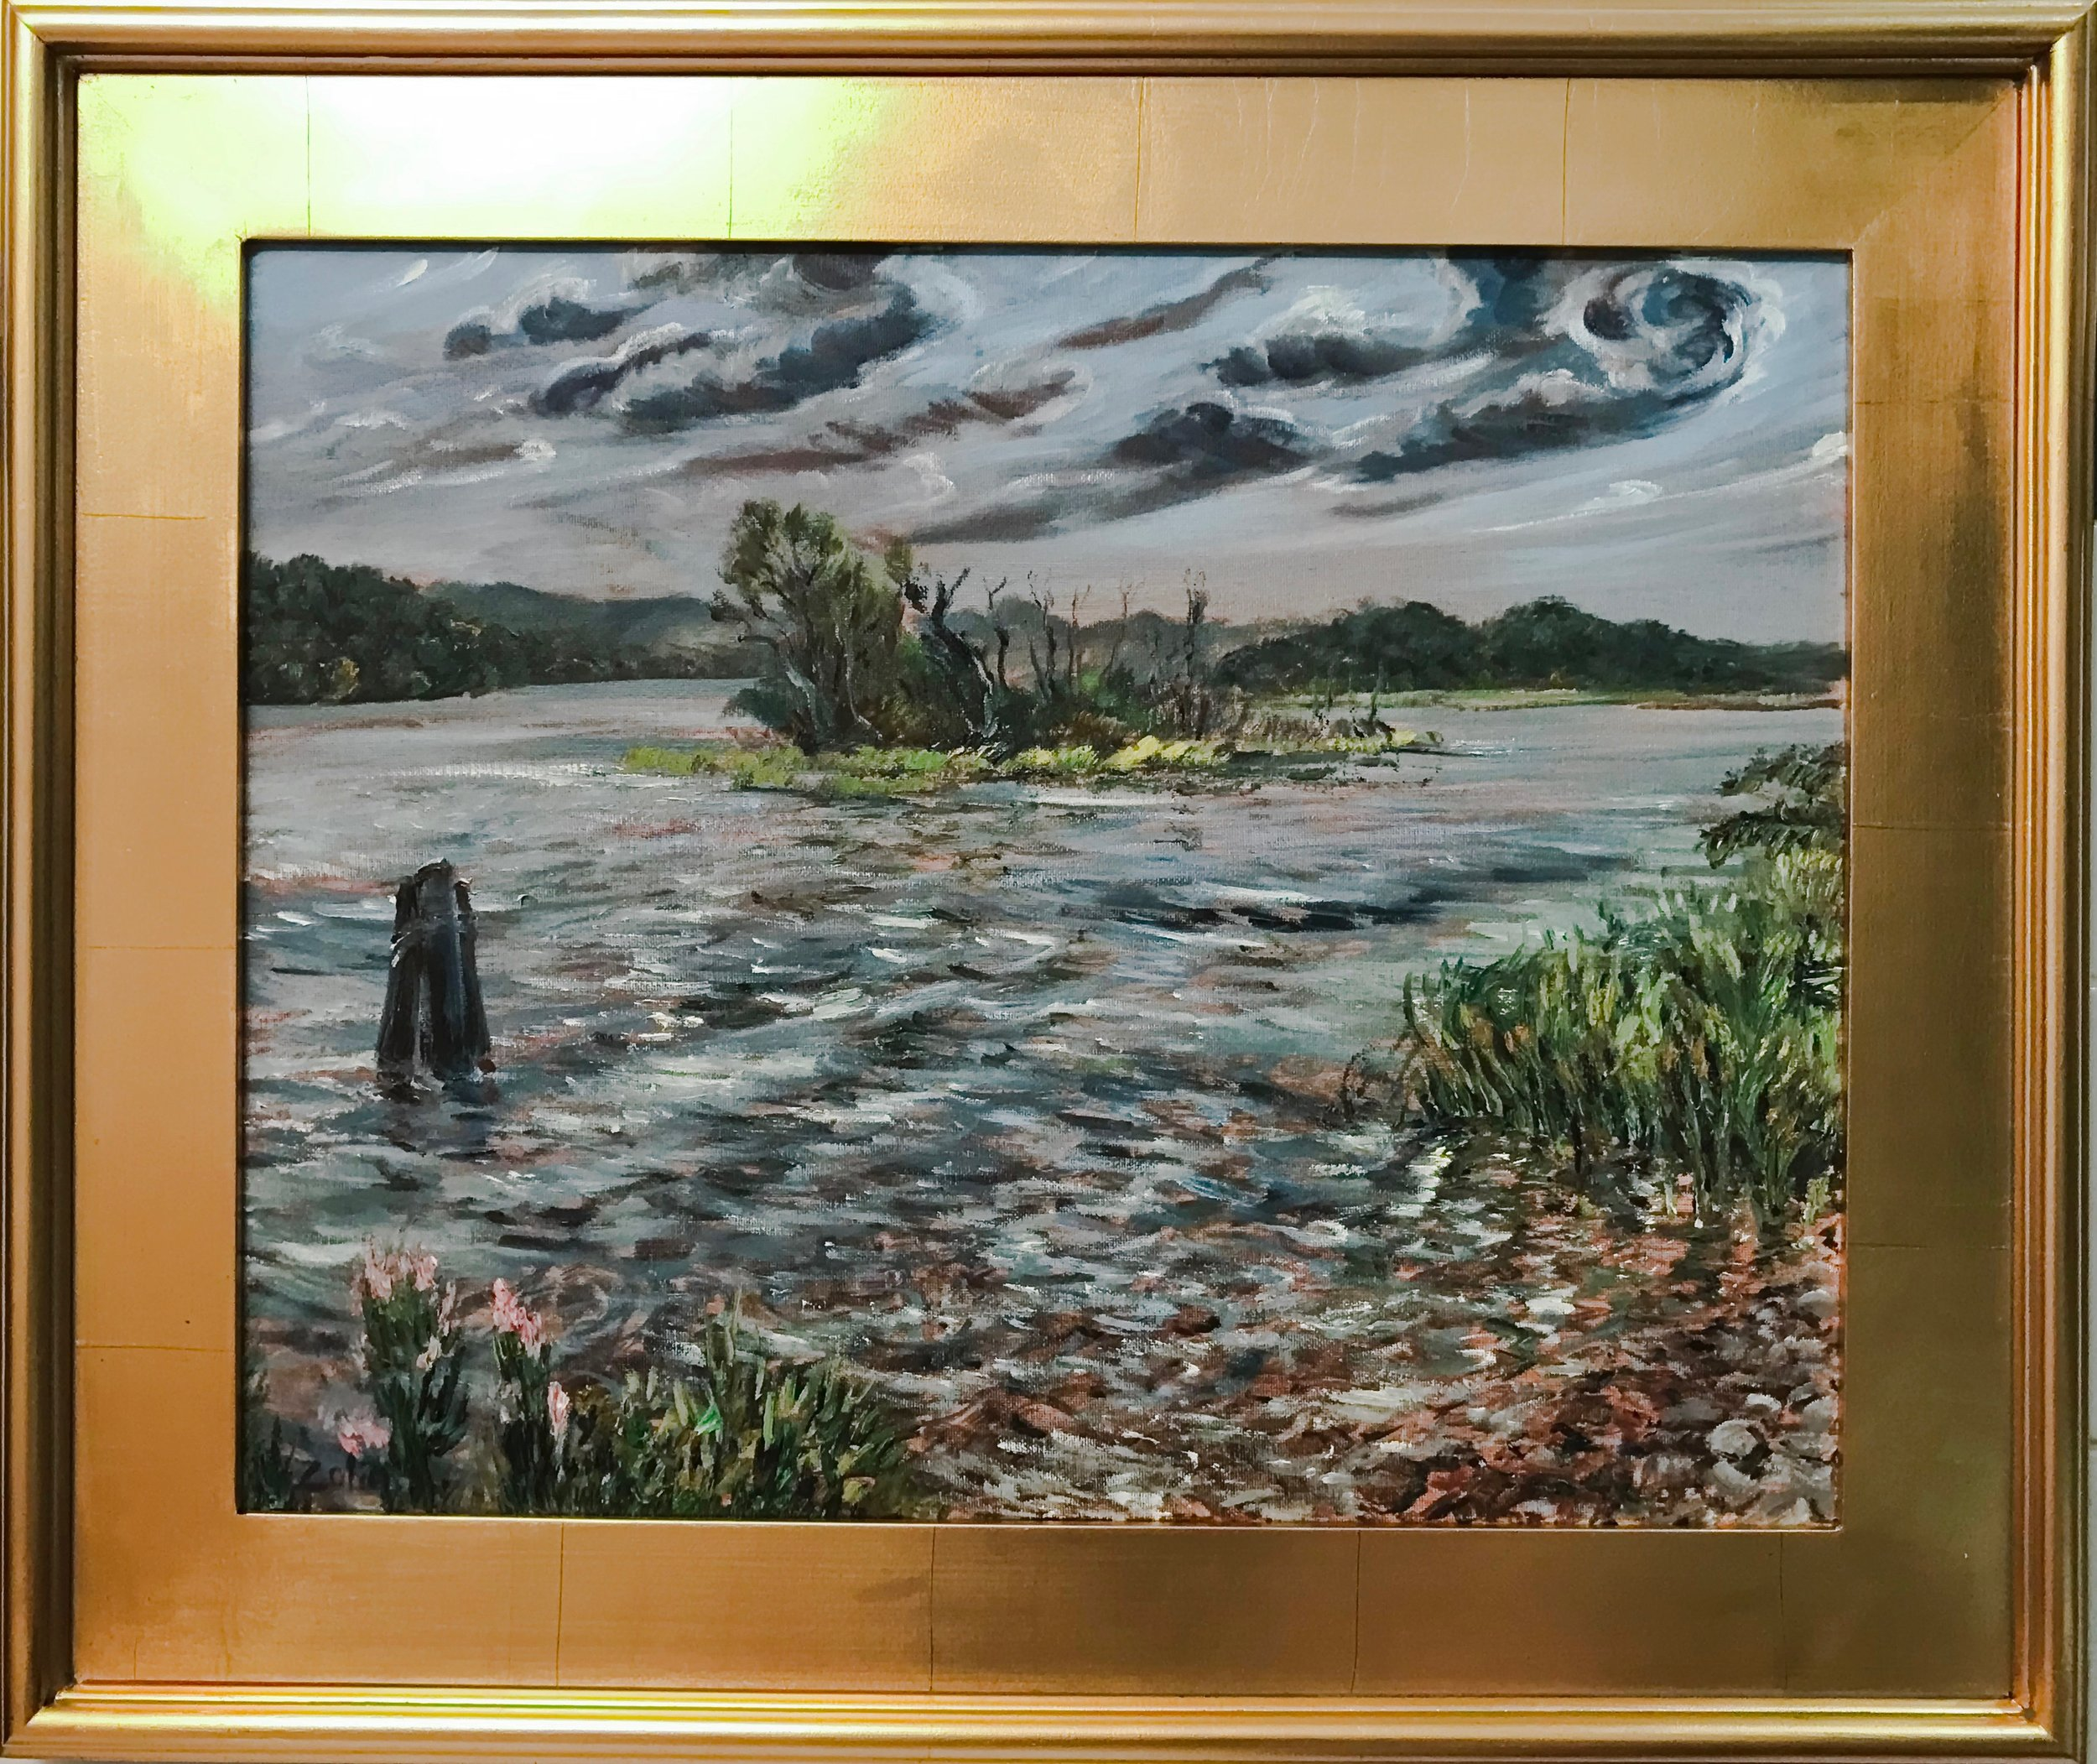 Steve Zolin   Salmon River, CT   2018  Oil on canvas  Signed by the artist, lower left  16 x 20 inches  Framed: 22 x 26 inches